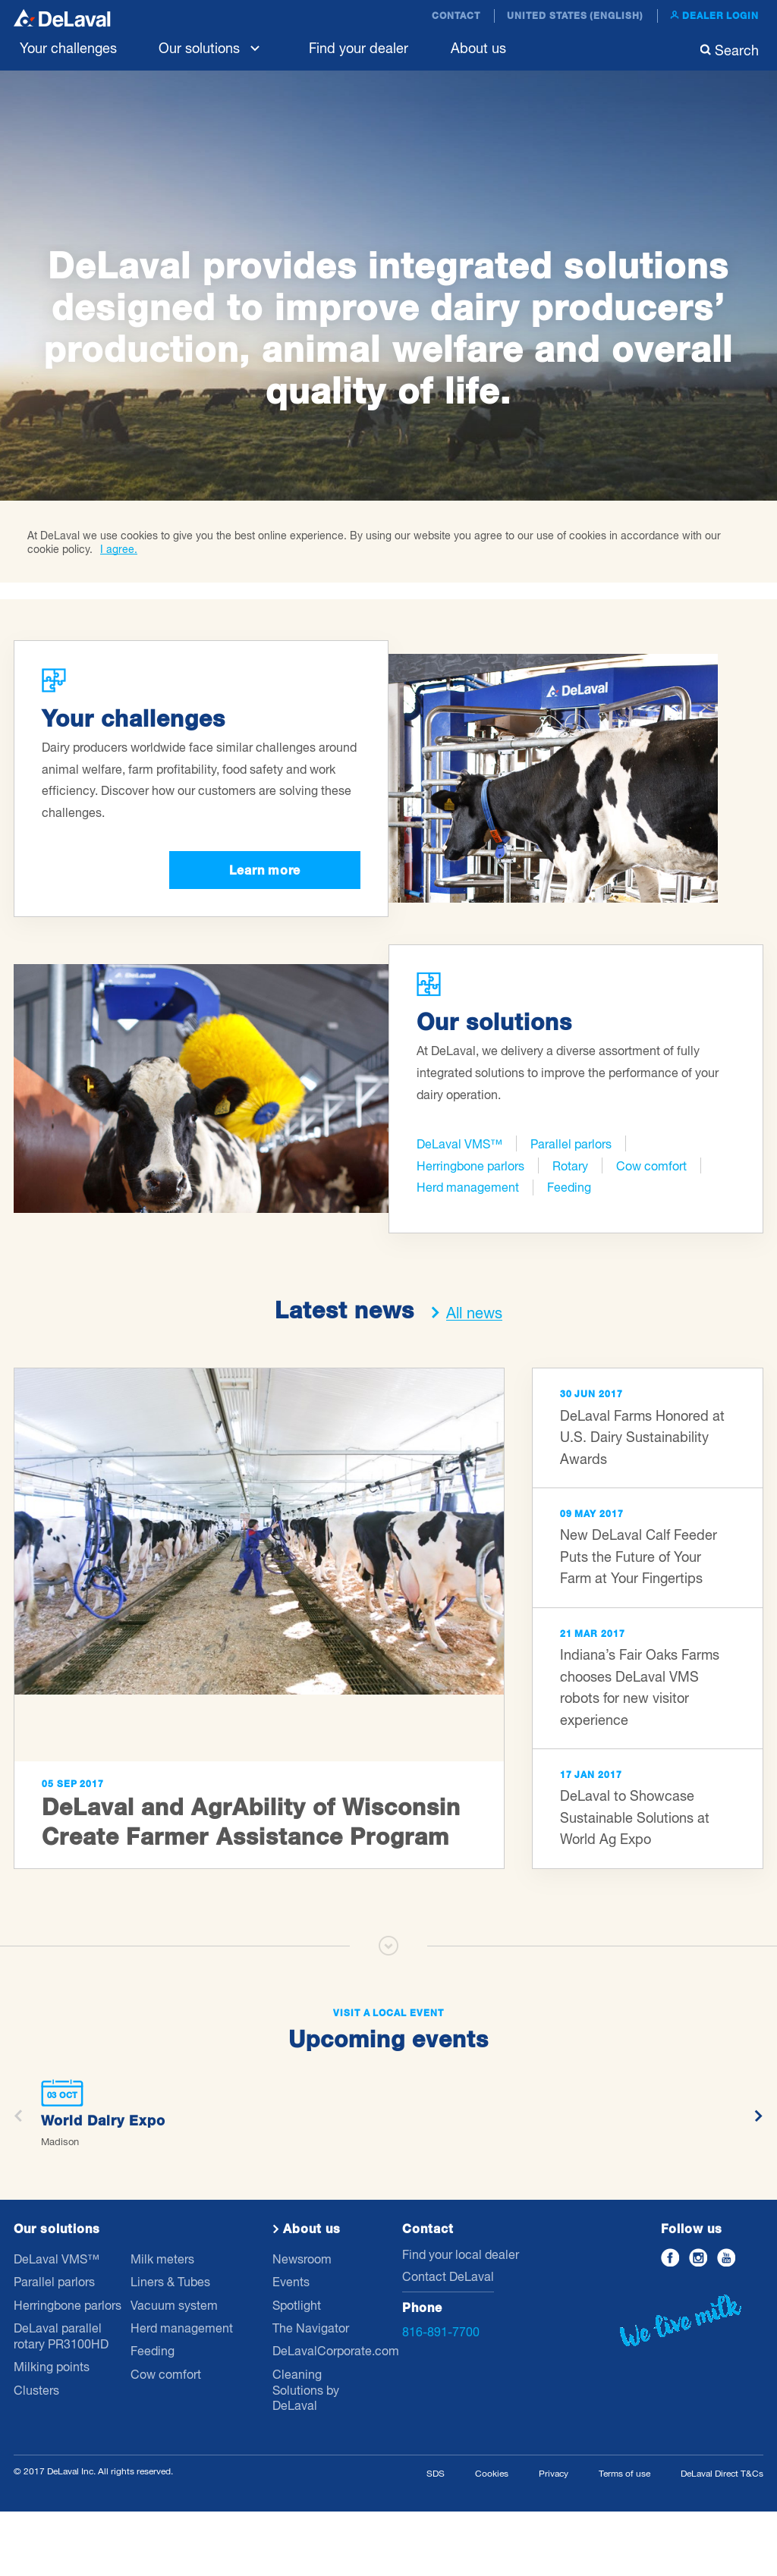 DeLaval Competitors, Revenue and Employees - Owler Company